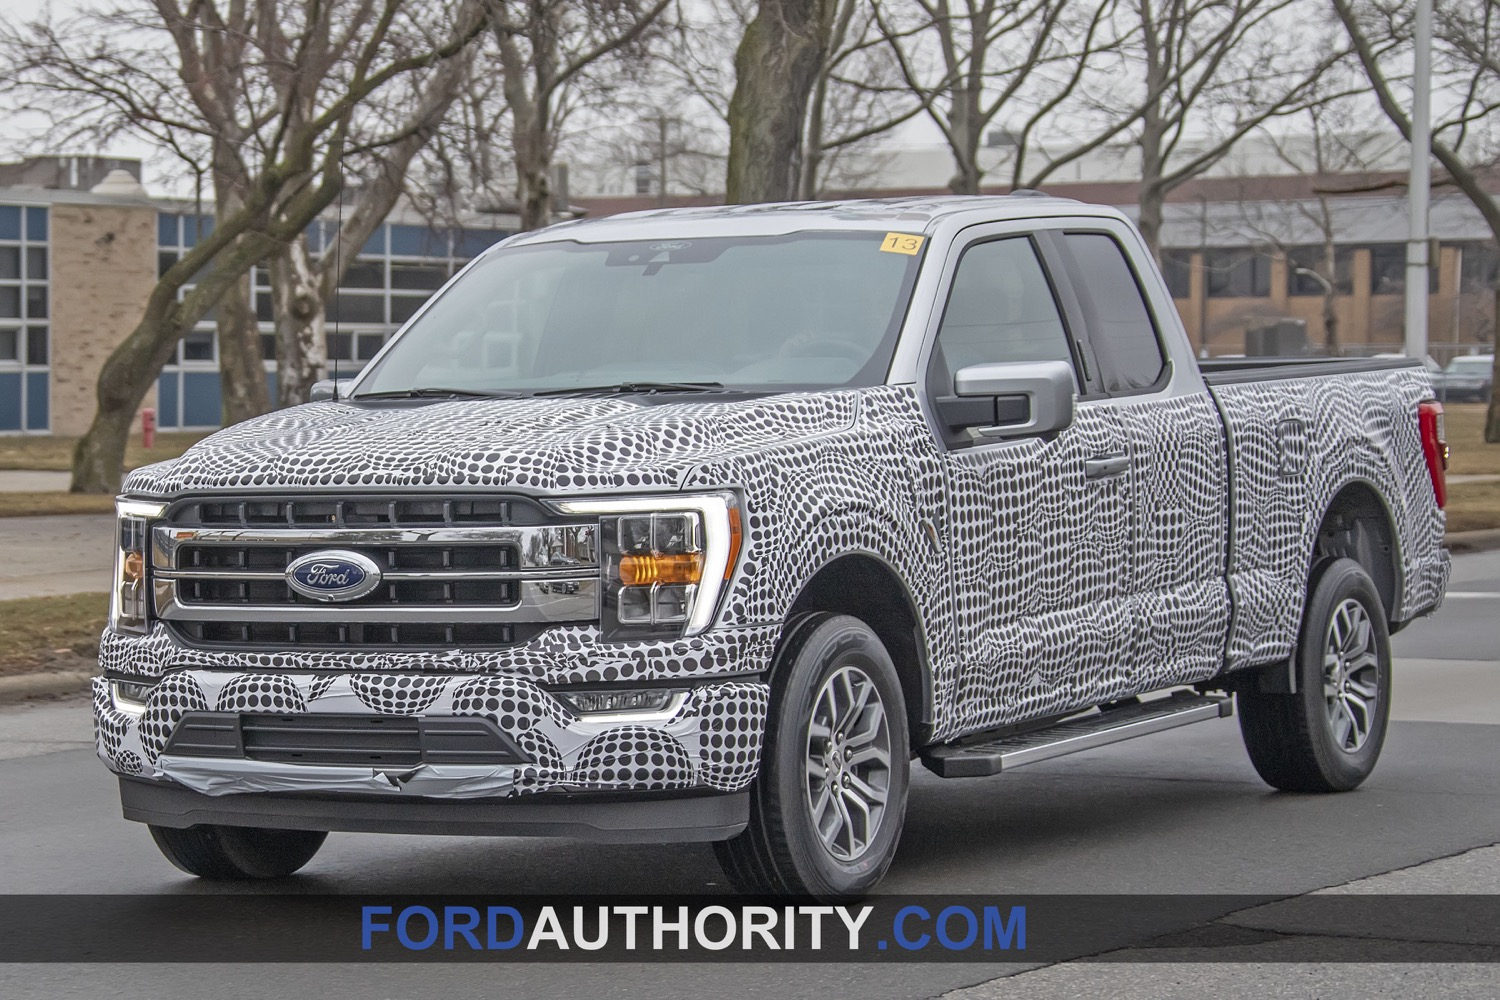 2021 Ford F-150: 10 Things We Want From The All-New Pickup Truck